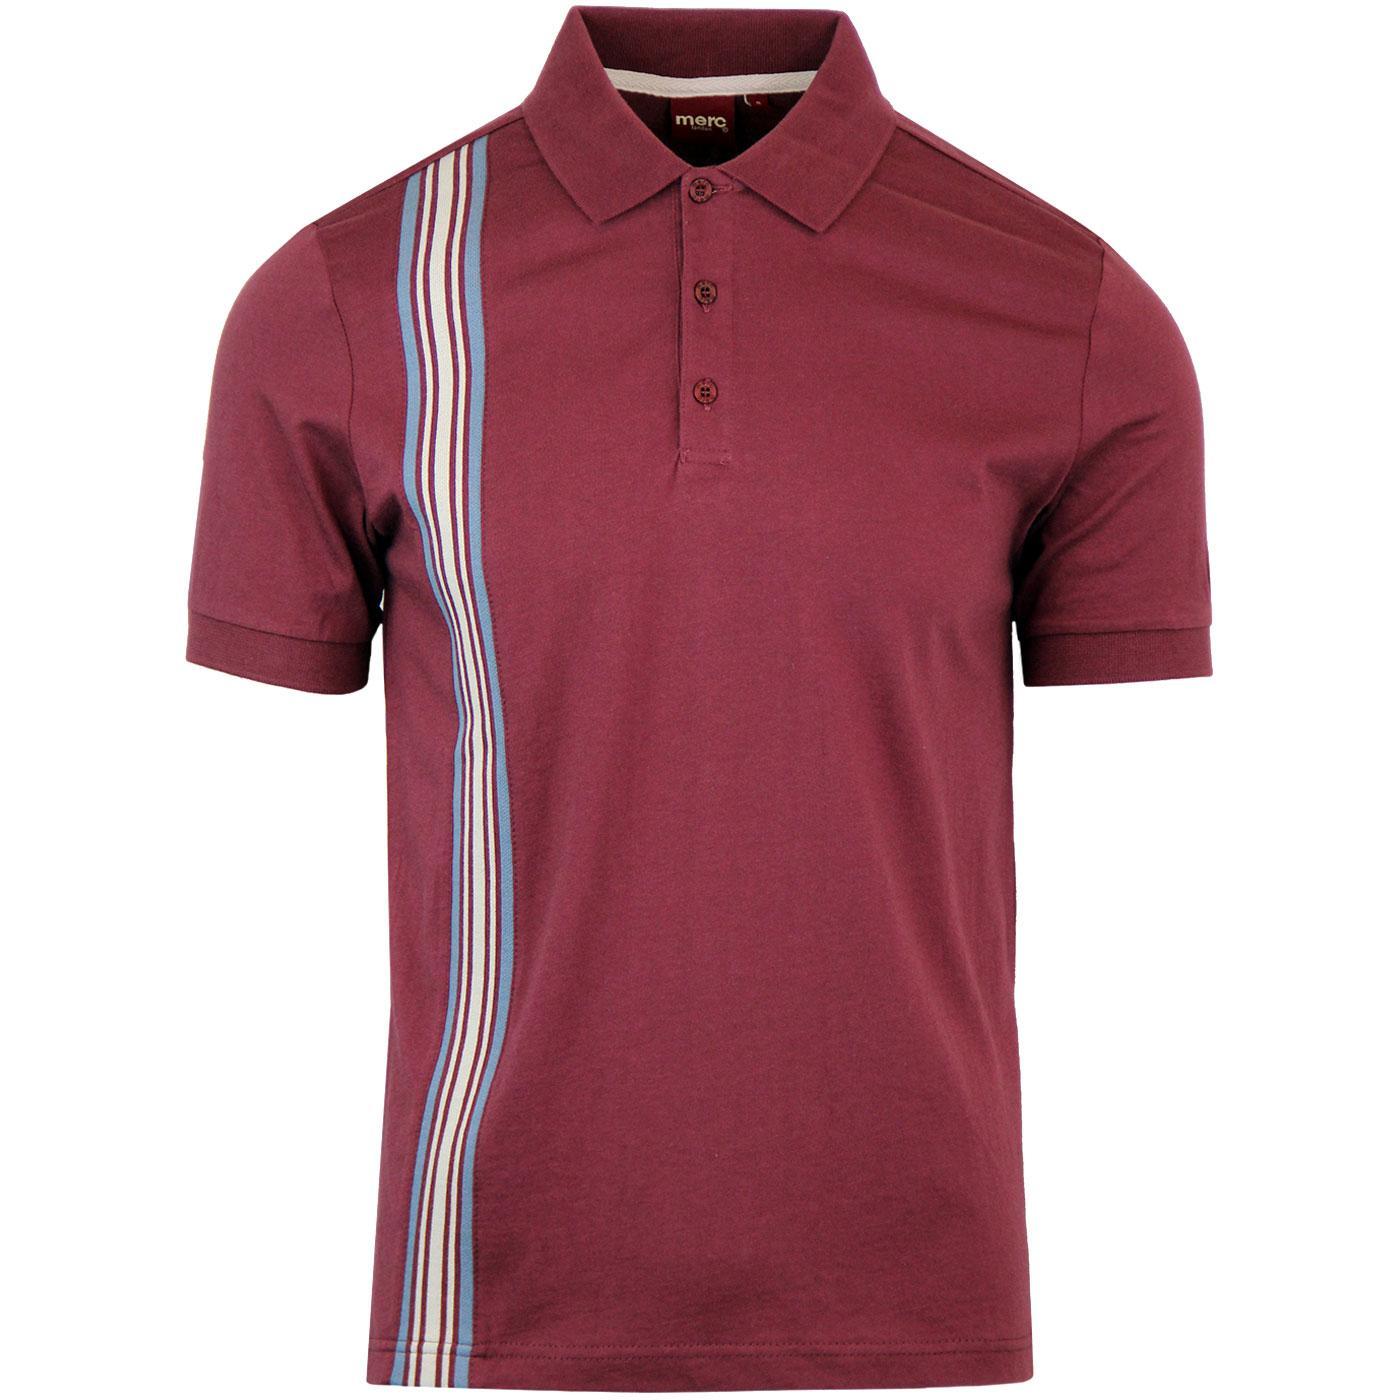 Goldhawk MERC Retro Racing Stripe Panel Polo (W)